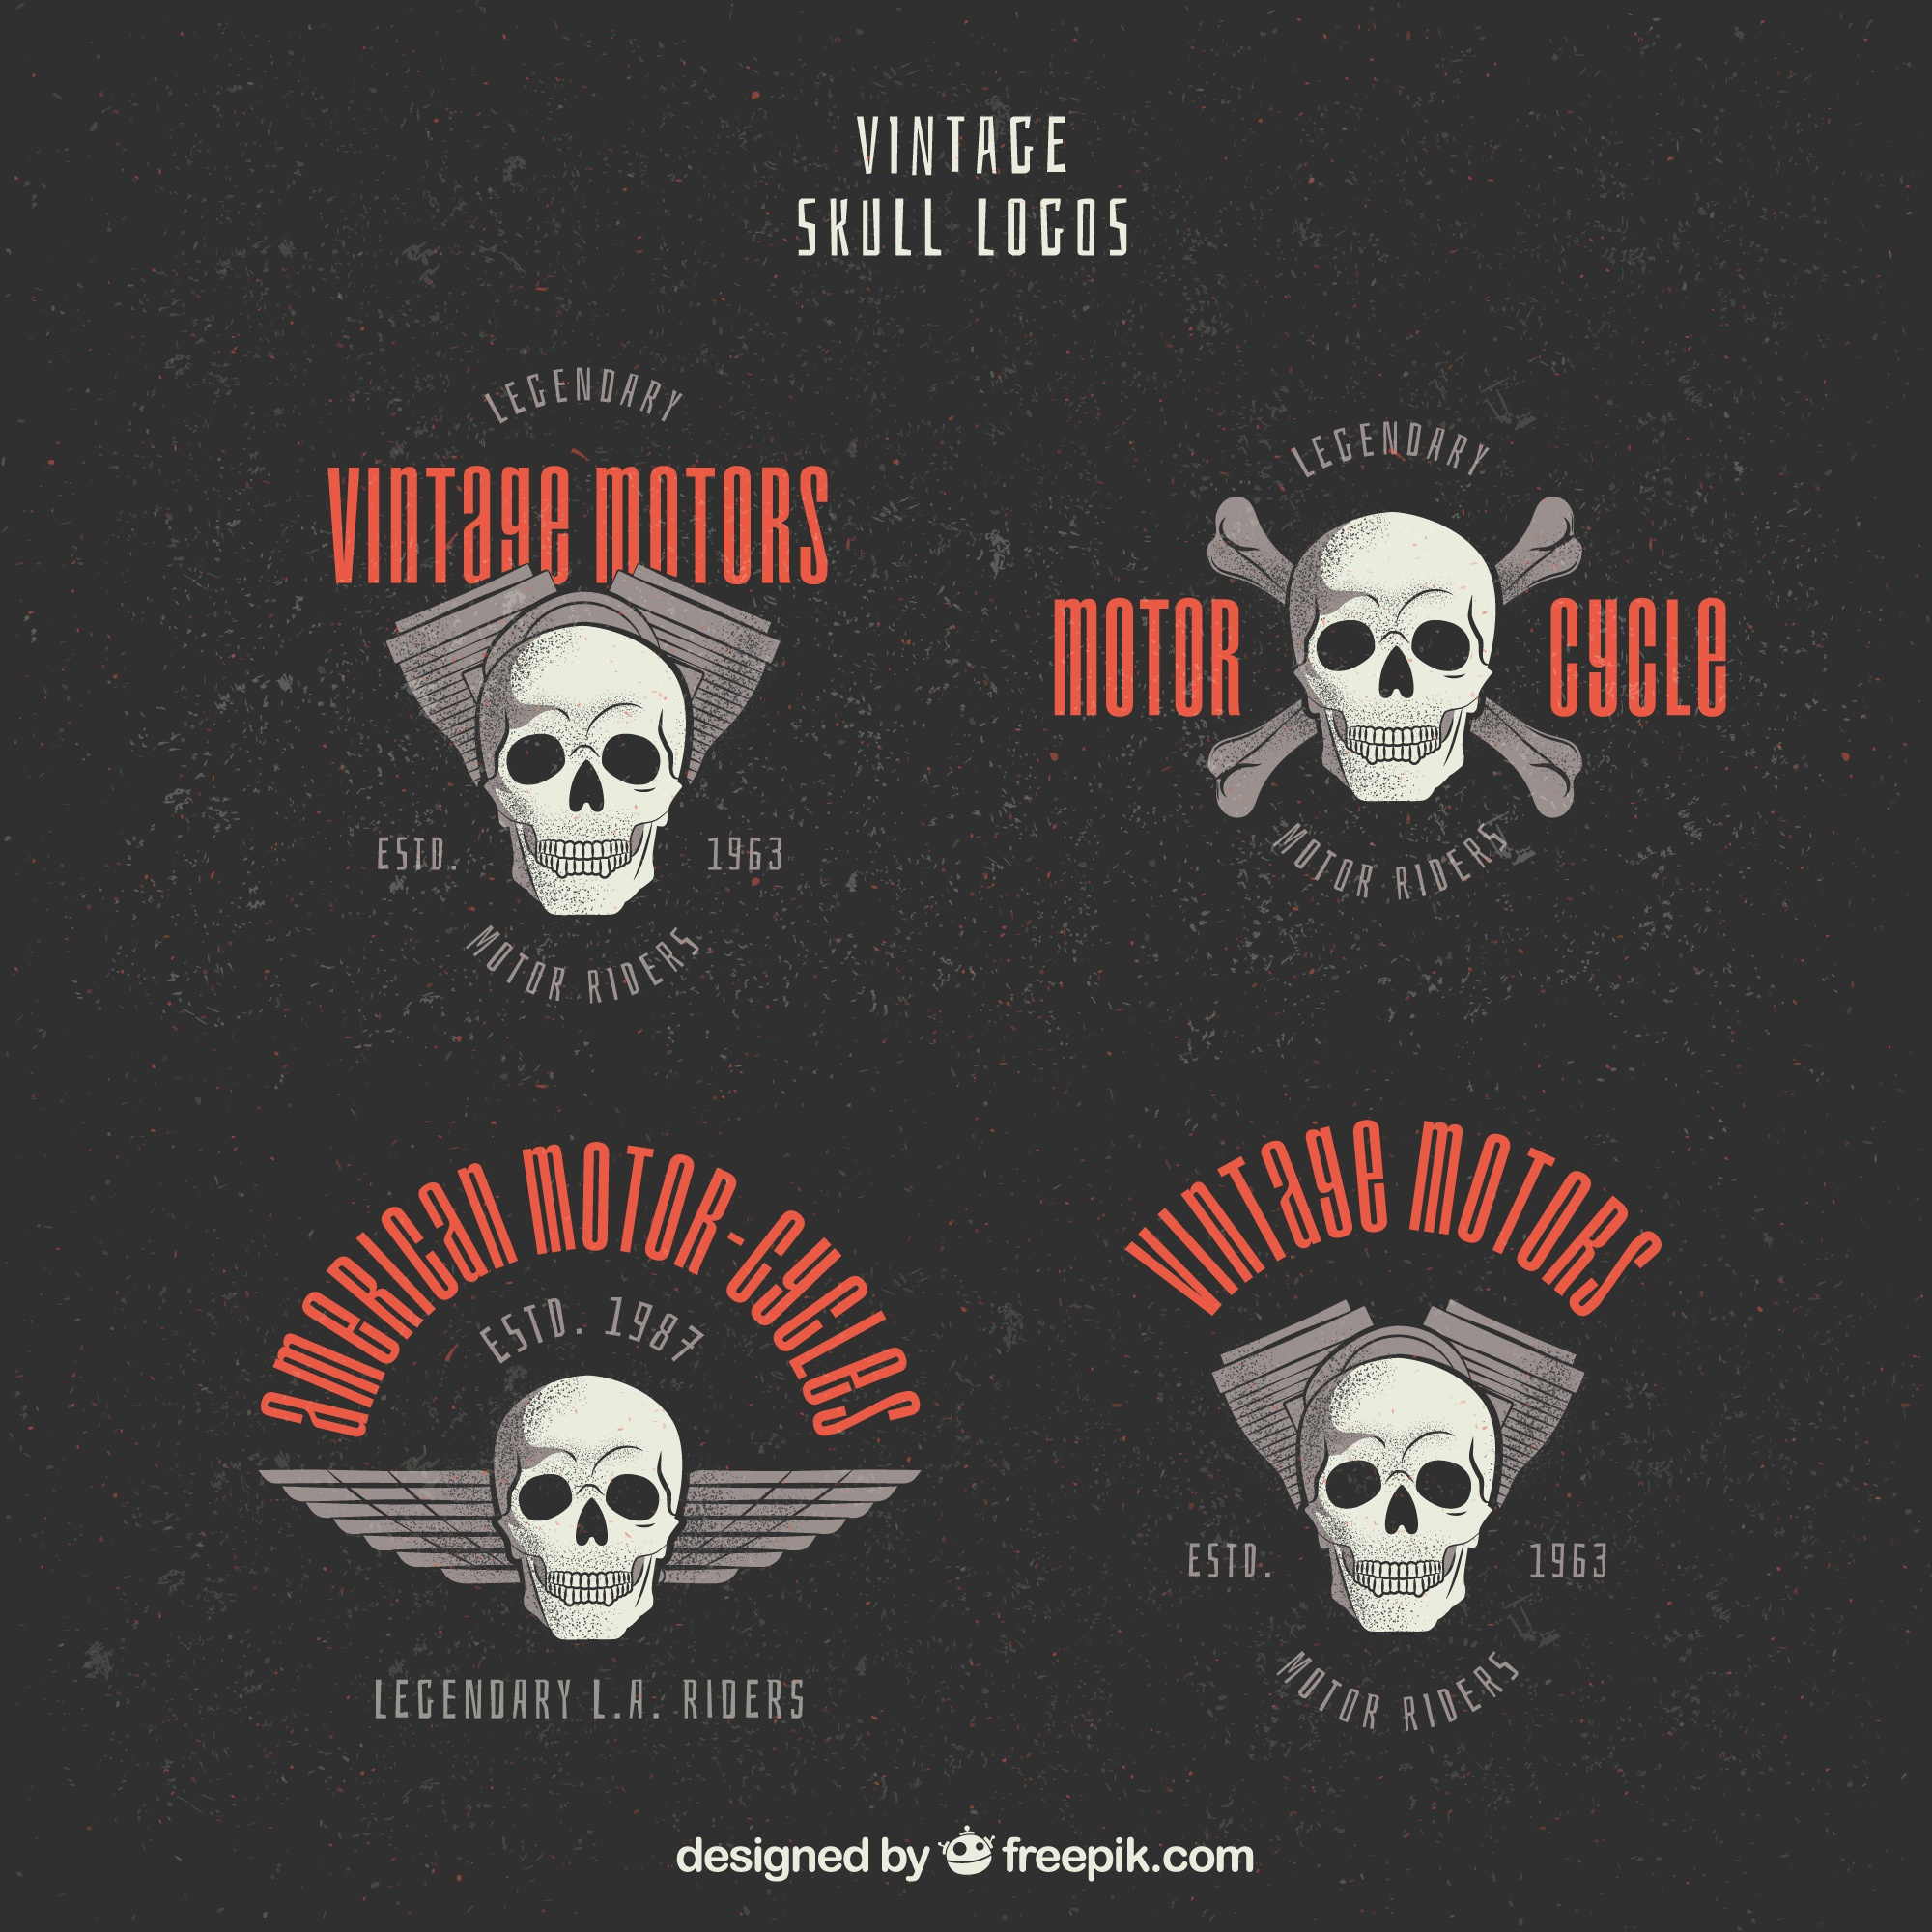 Vintage skull logos with red details